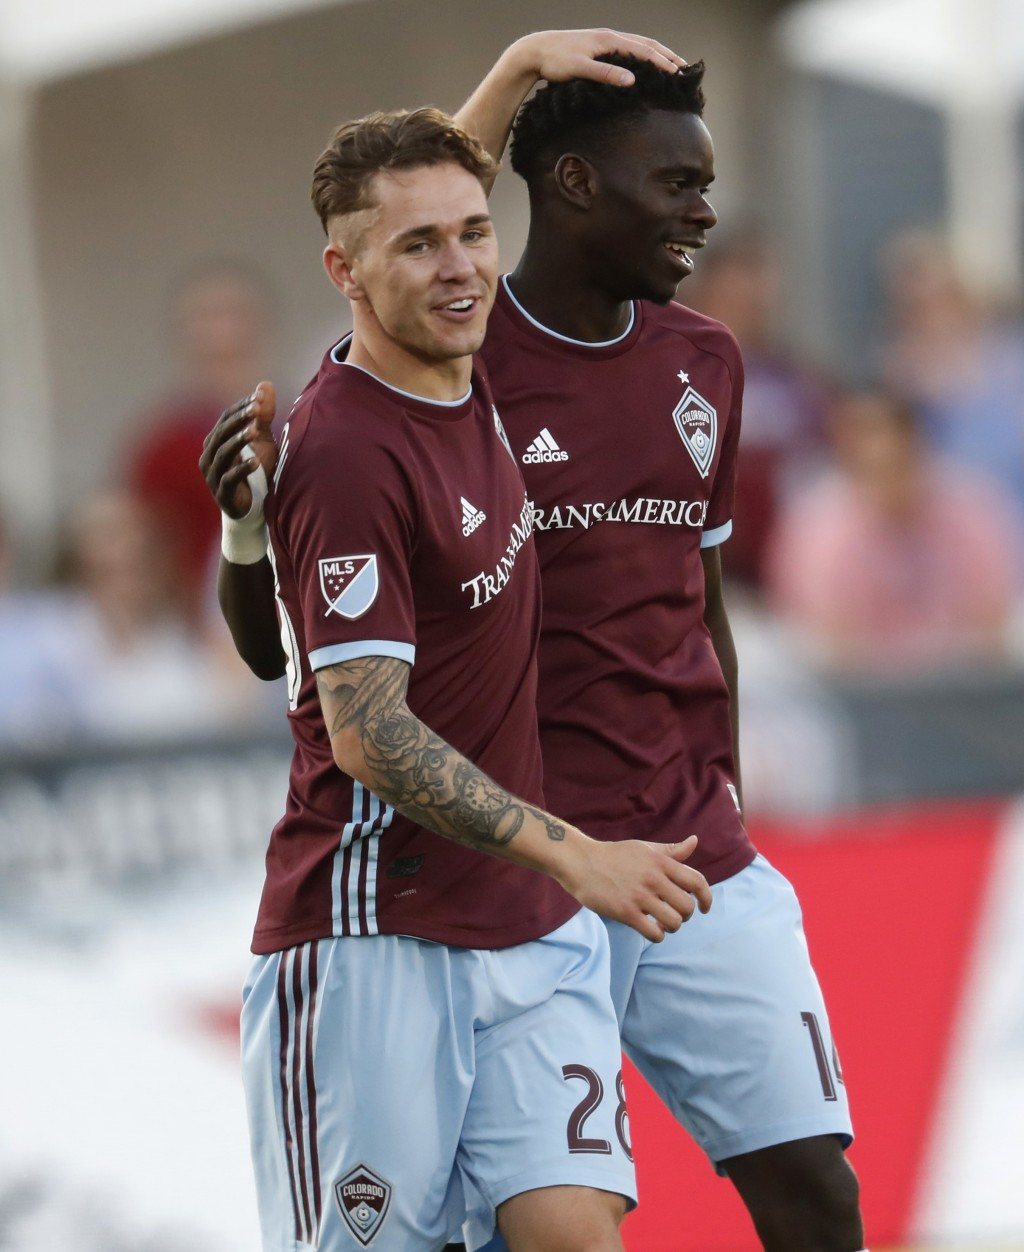 Colorado Rapids midfielder Sam Nicholson, front, congratulates forward Dominique Badji for his goal against the Chicago Fire during the first half of